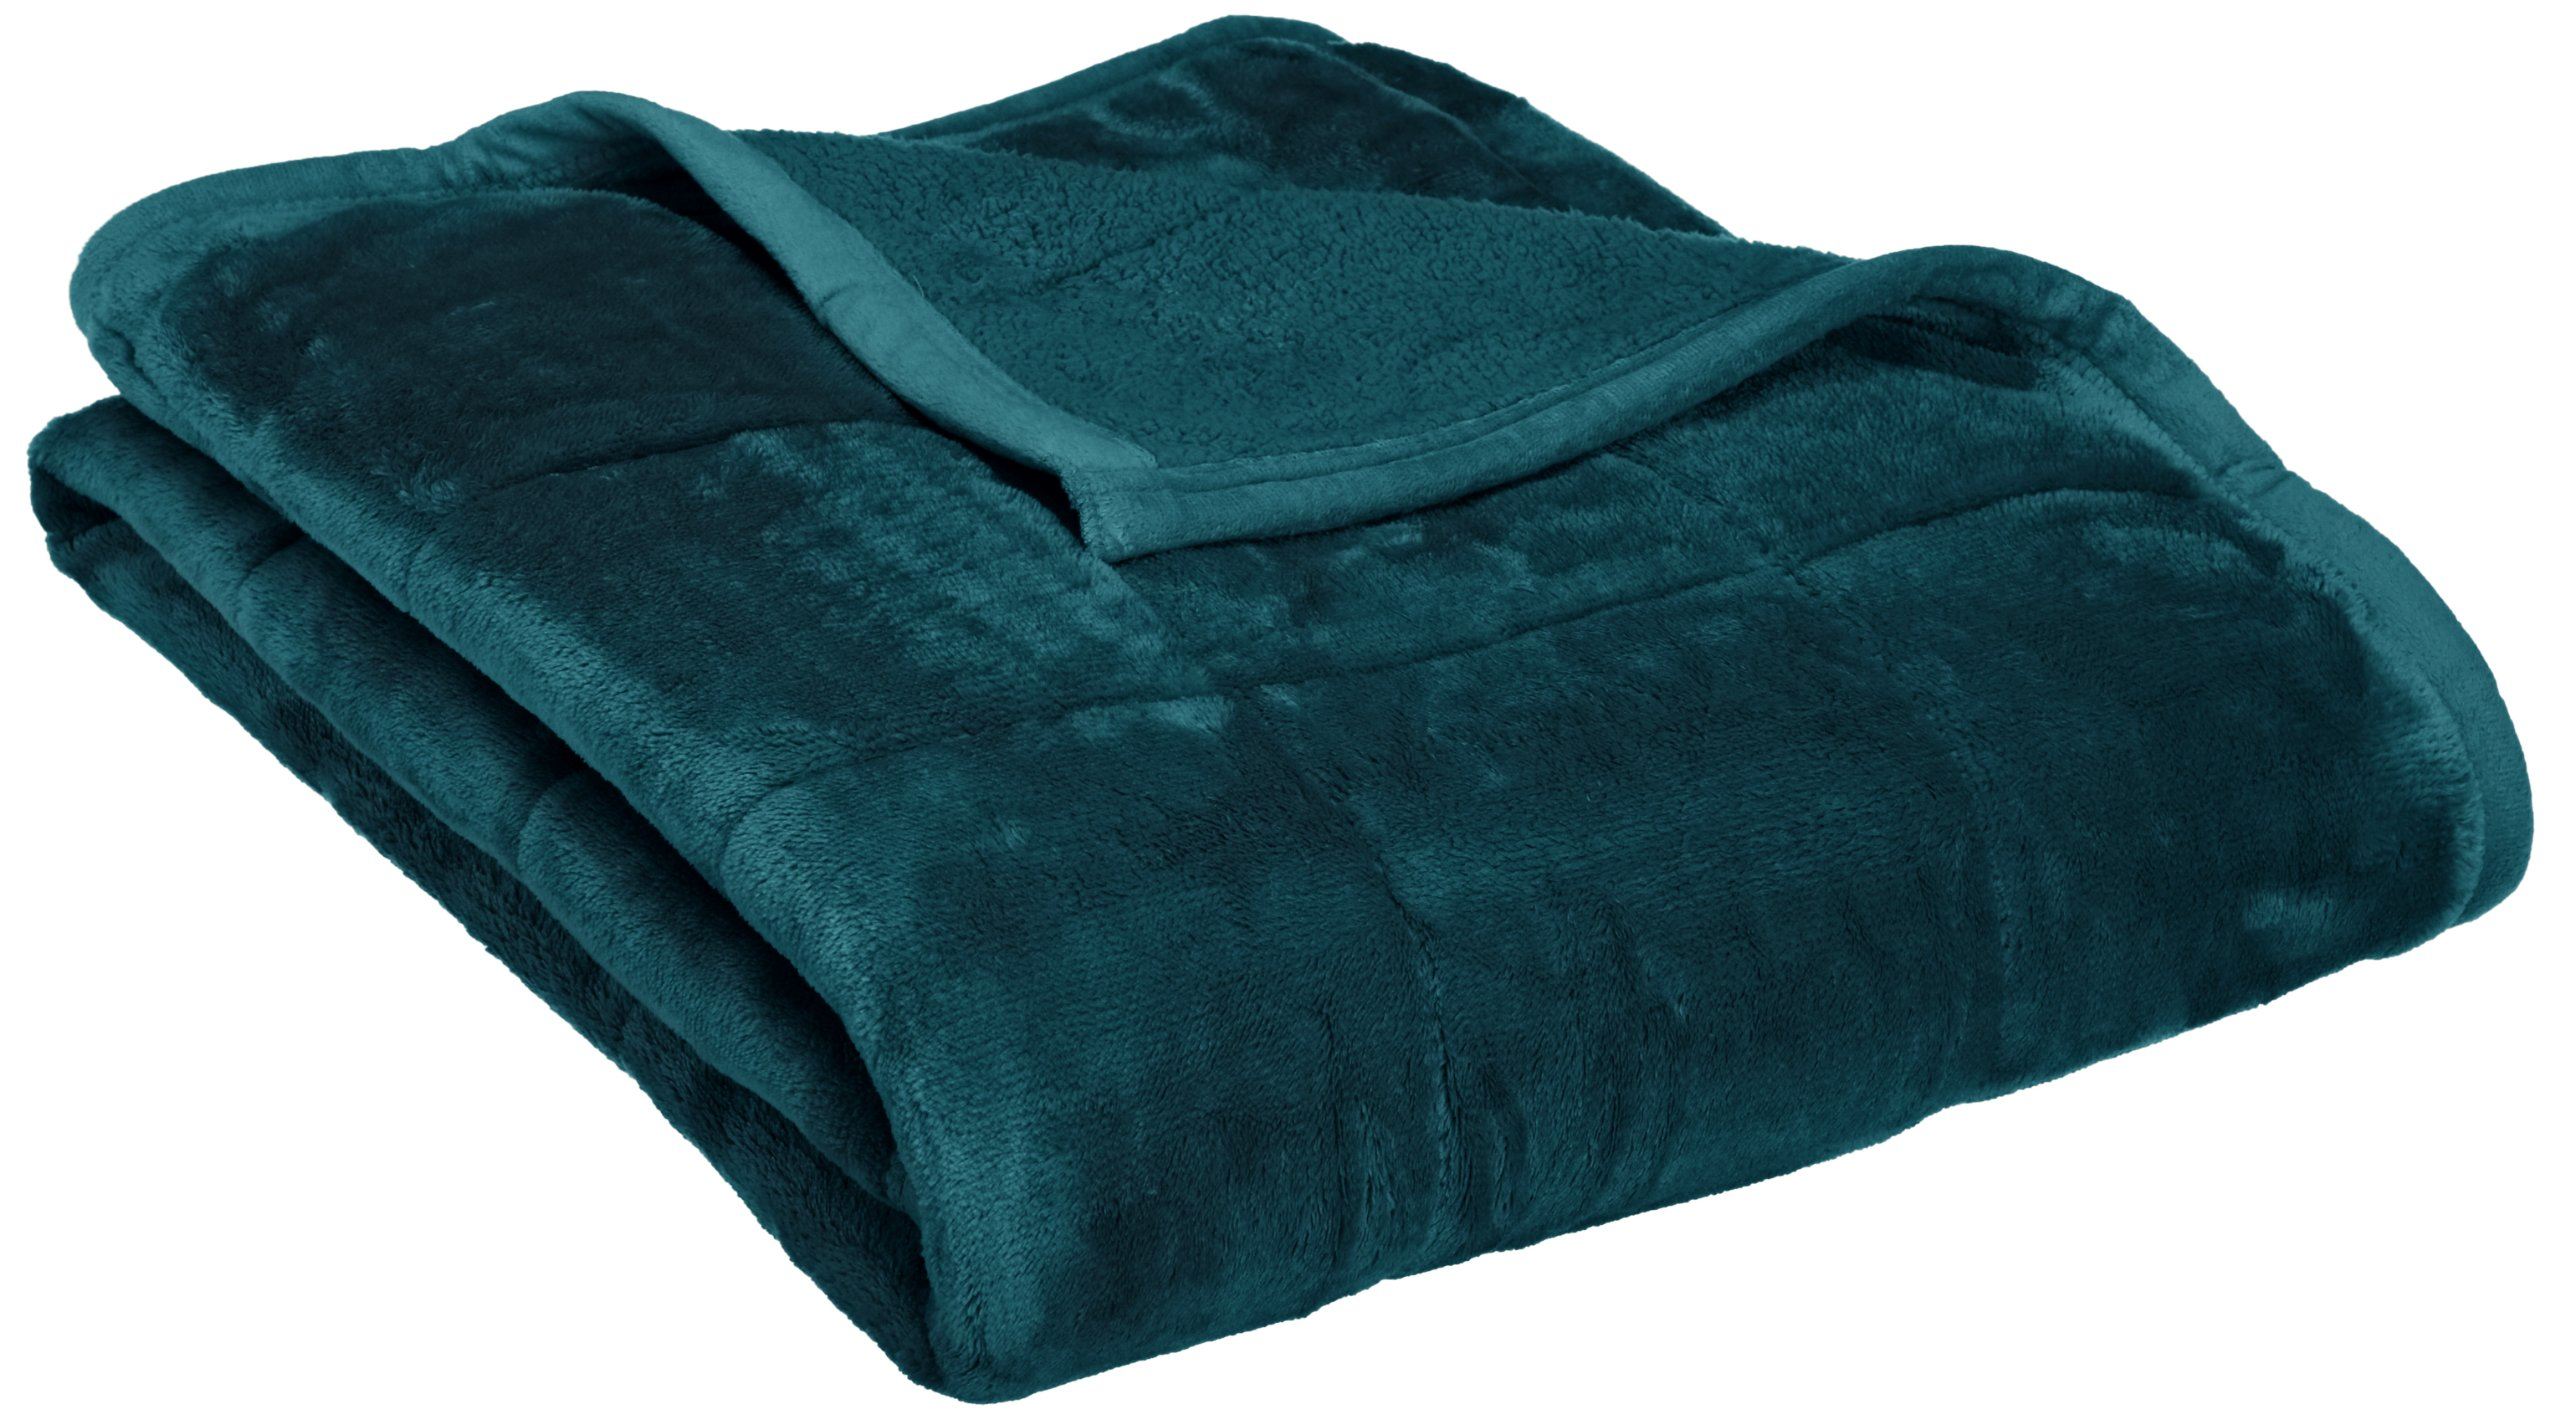 Northpoint Baroque Quilted Berber Reversible Throw Blanket, Teal - 100% Polyester Down Alternative Fill Unique soft and silky feel - blankets-throws, bedroom-sheets-comforters, bedroom - 81Snq8s6h9L -